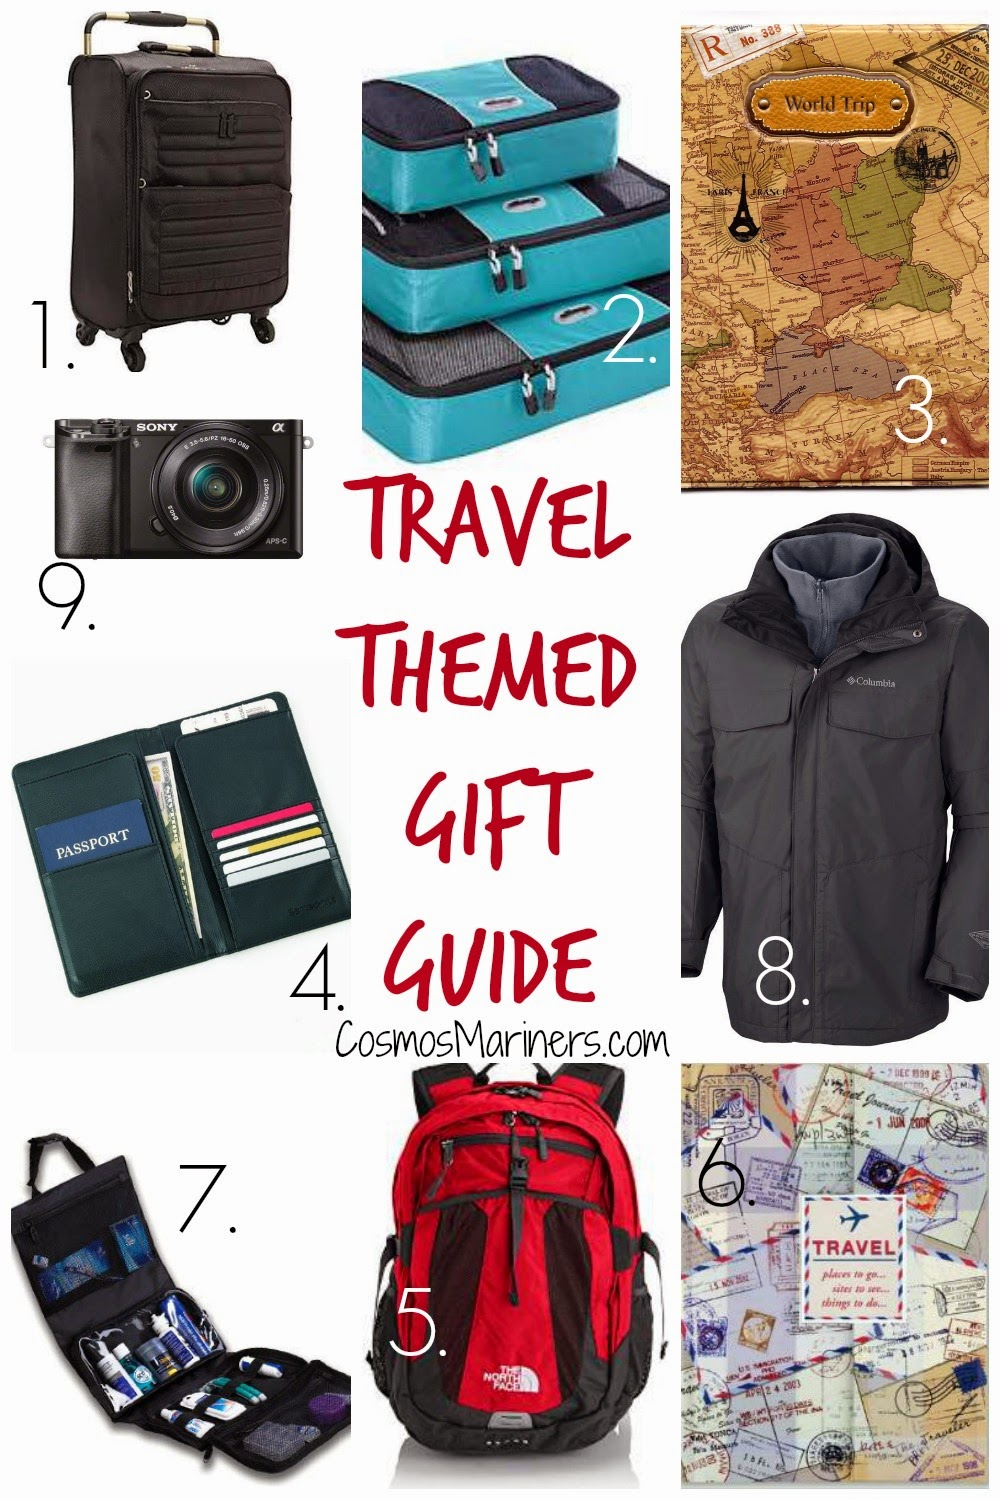 Travel Themed Gift Guide: Christmas Ideas for Your Favorite Traveler | CosmosMariners.com